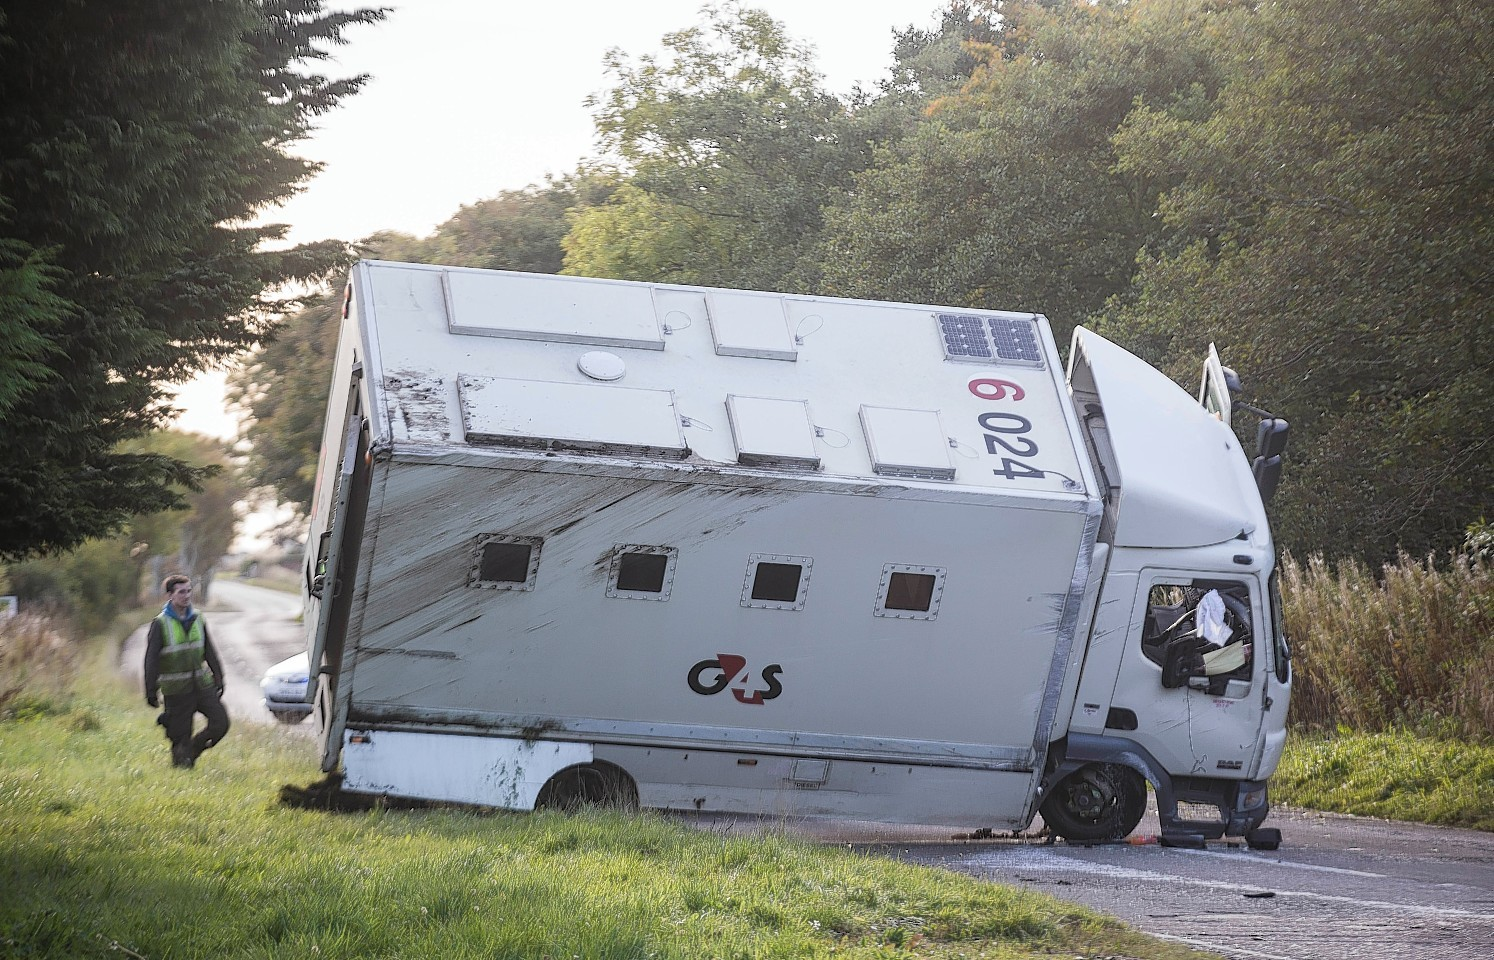 The G4S van crash